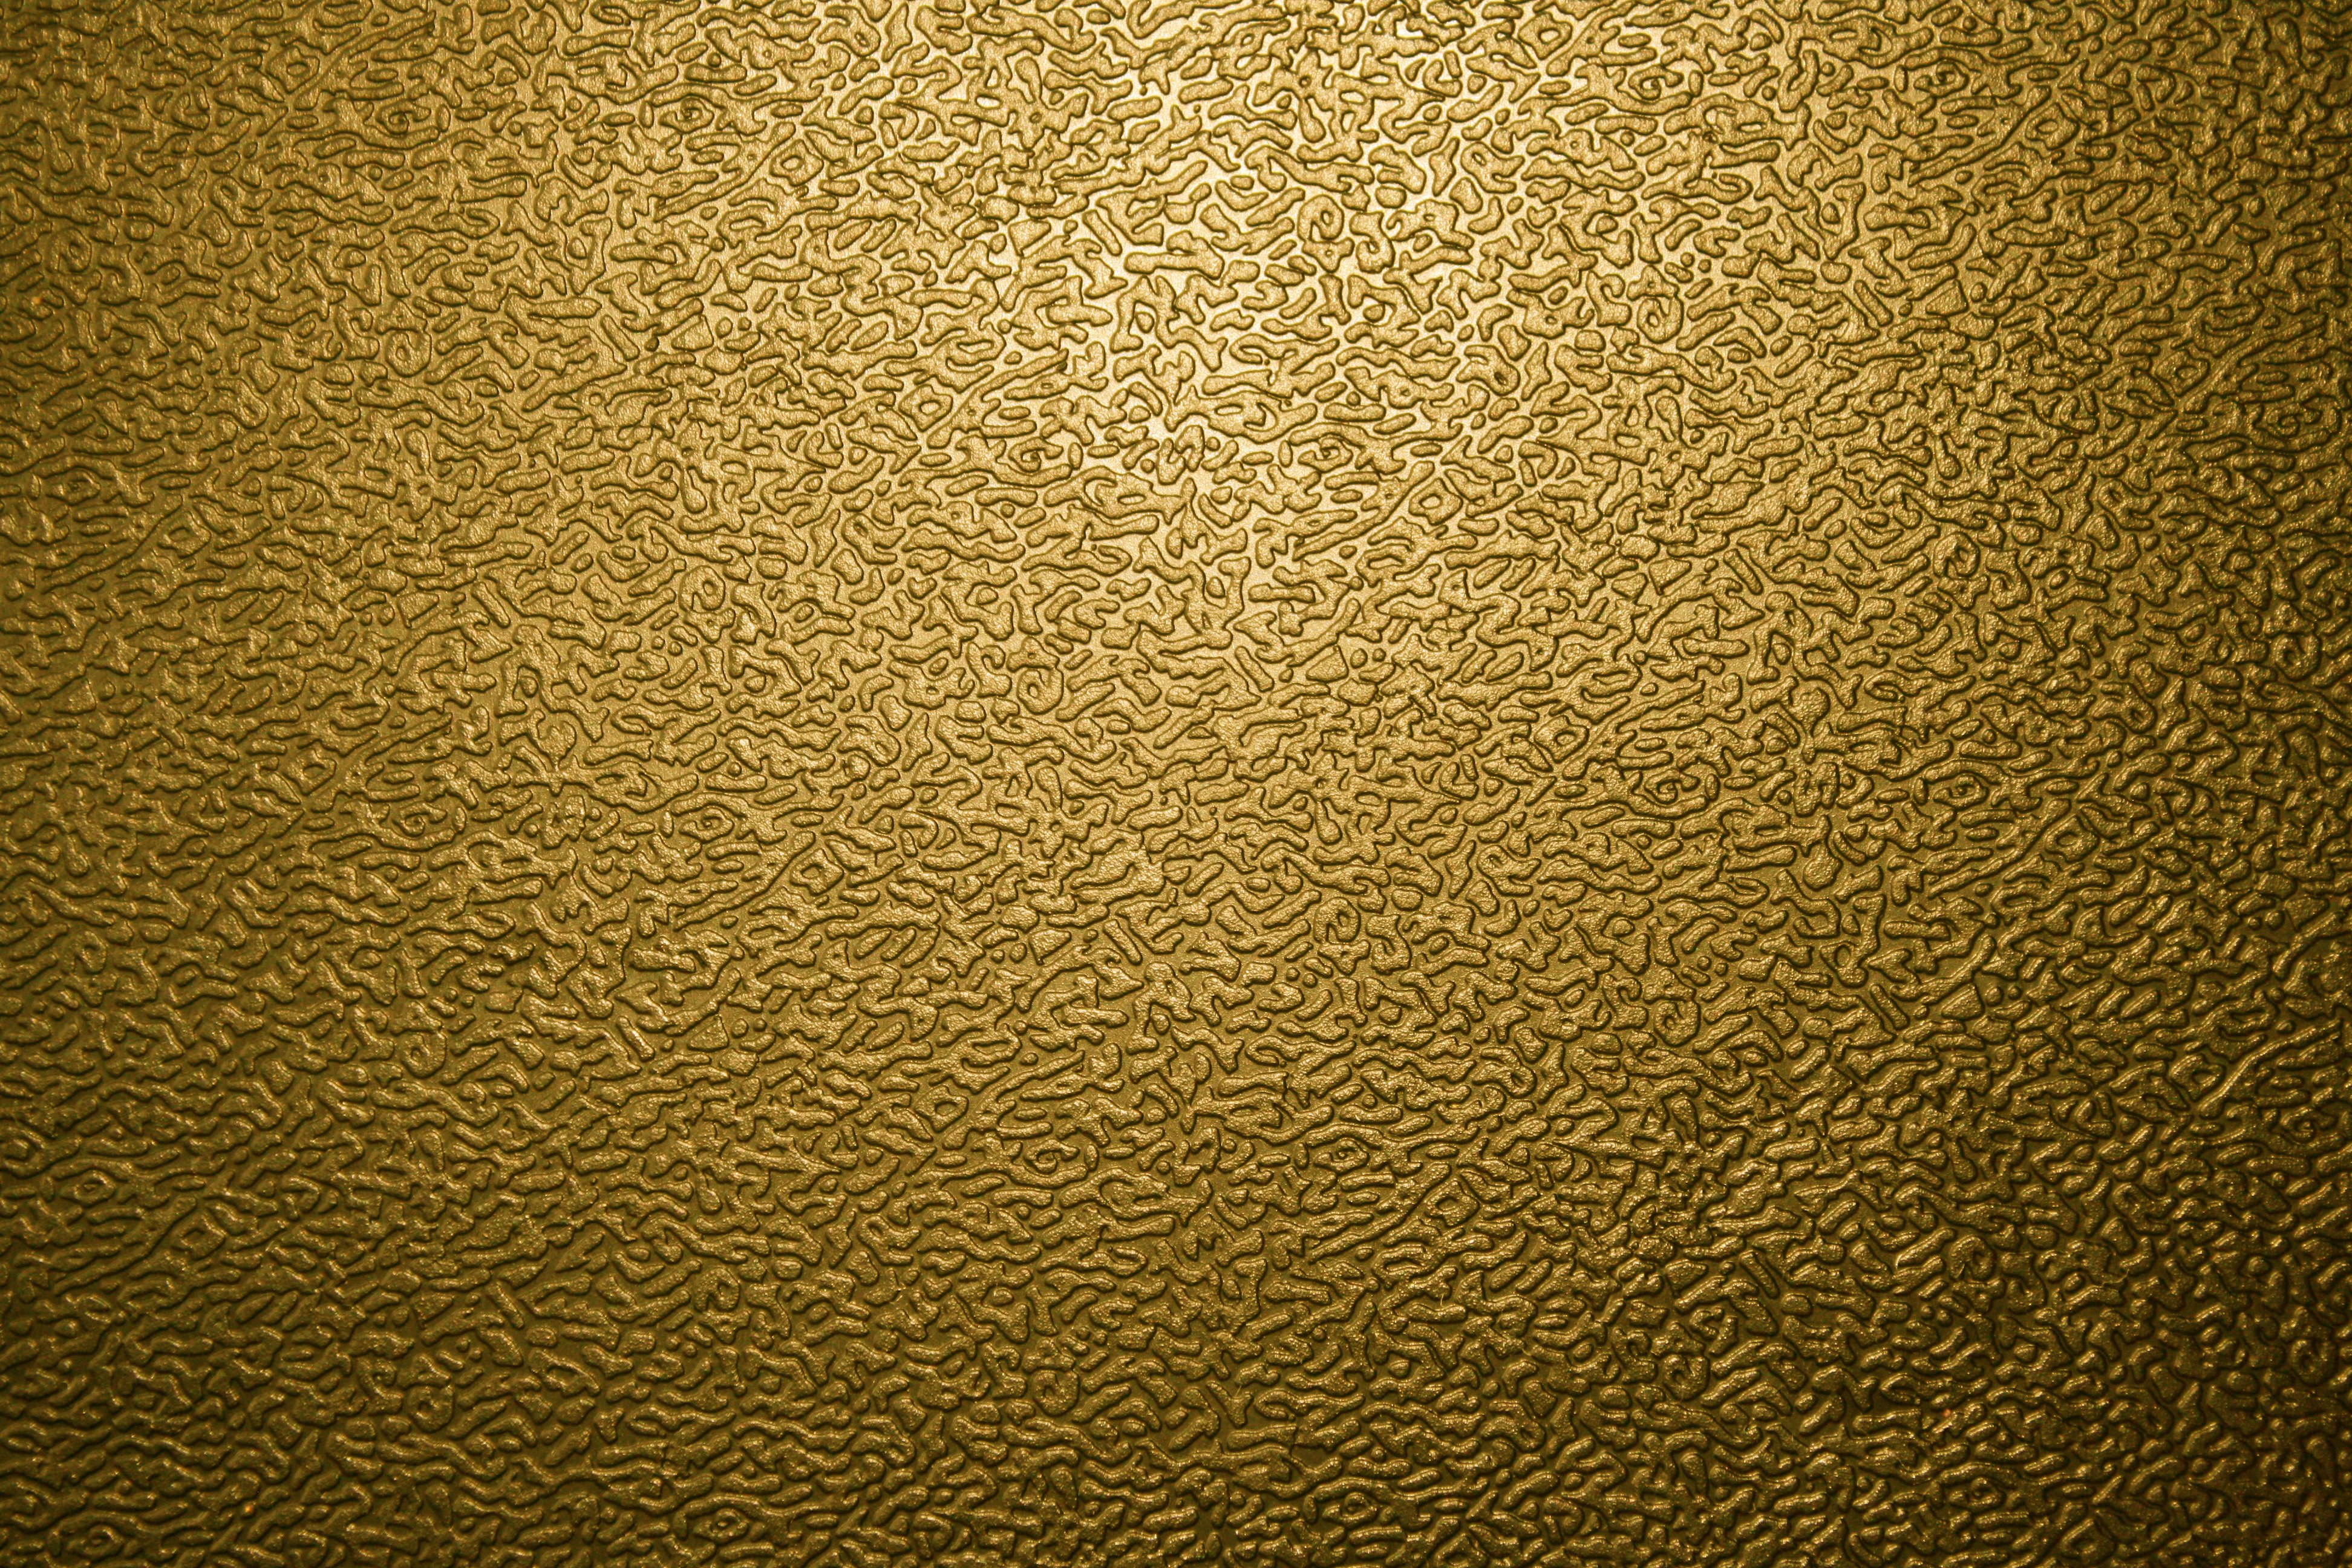 Textured Gold Plastic Close Up Picture Photograph Photos 3888x2592